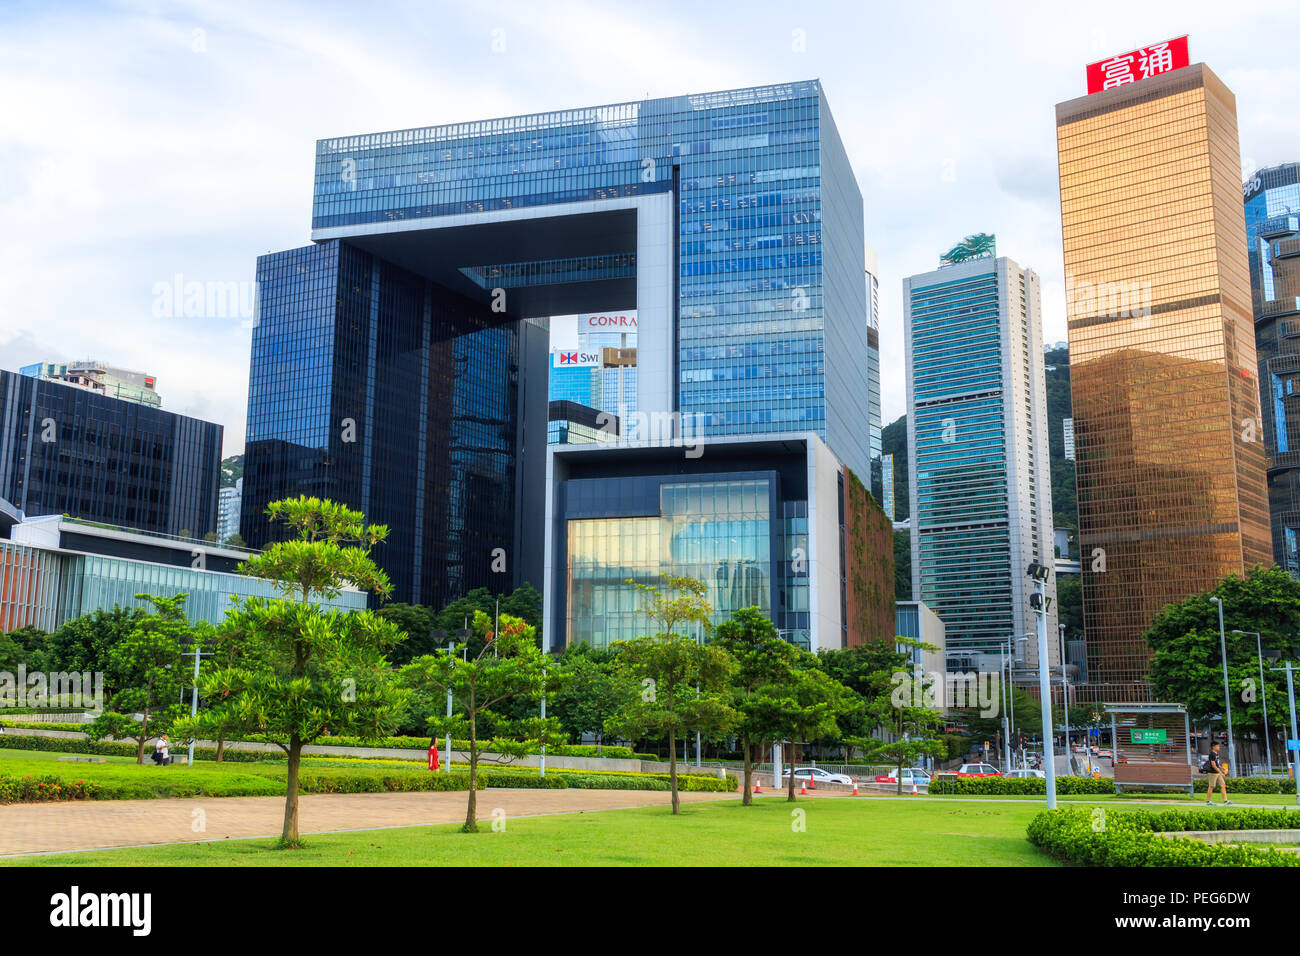 Hong Kong - August 01, 2018: View of Tamar Park and Central Government Complex Building Stock Photo